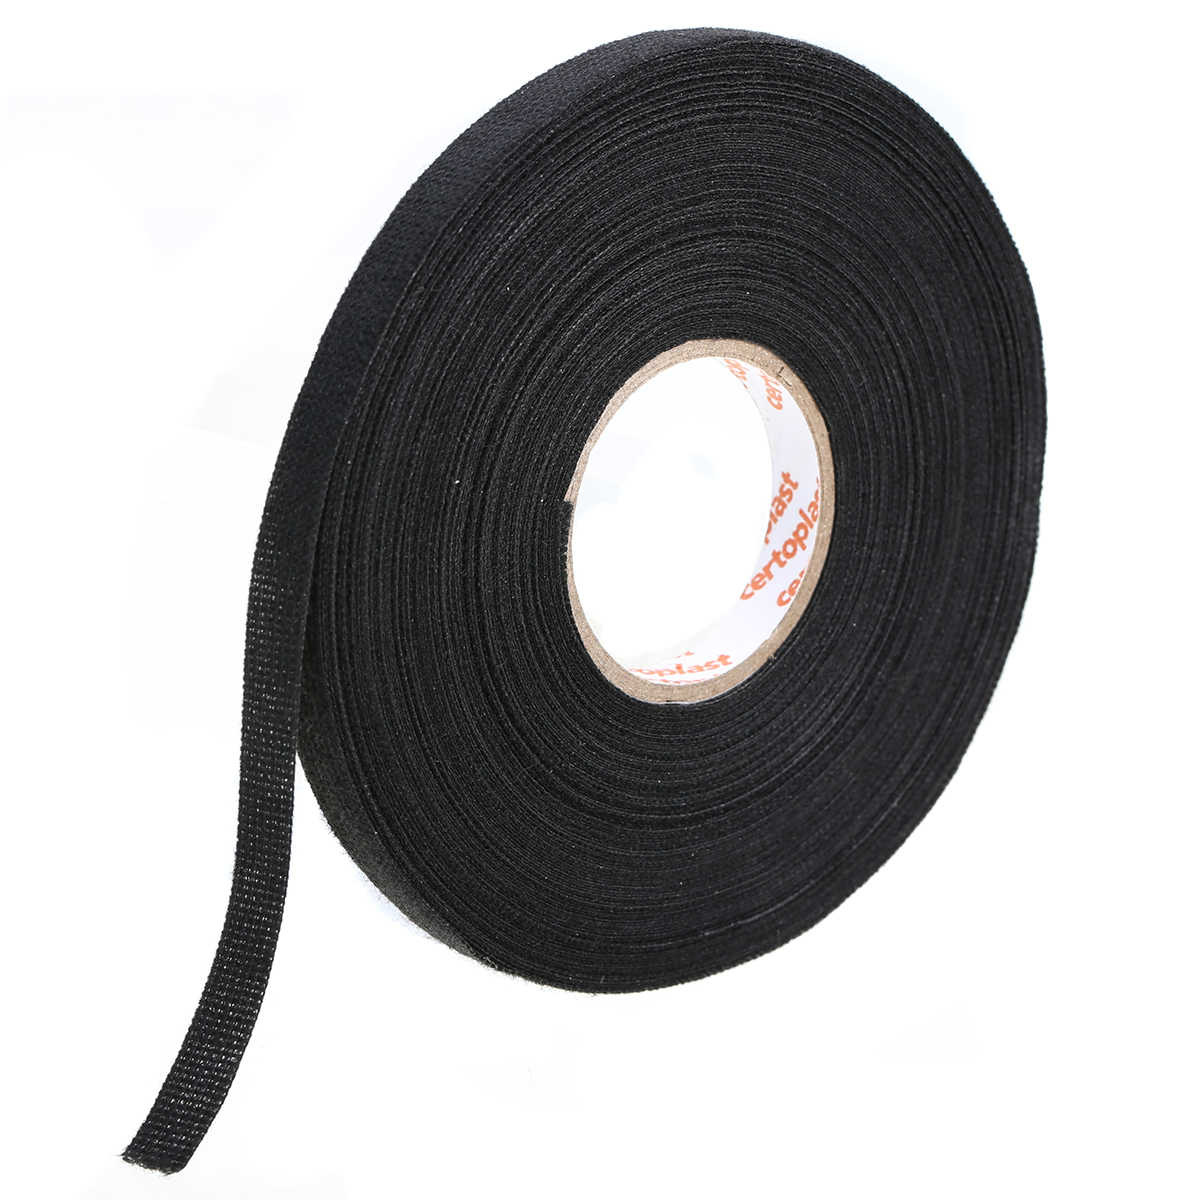 25M Length Strong Adhesive Tapes Wiring Harness Cloth Fabric Black Tape Cable Protection Accessories for Looms Cars